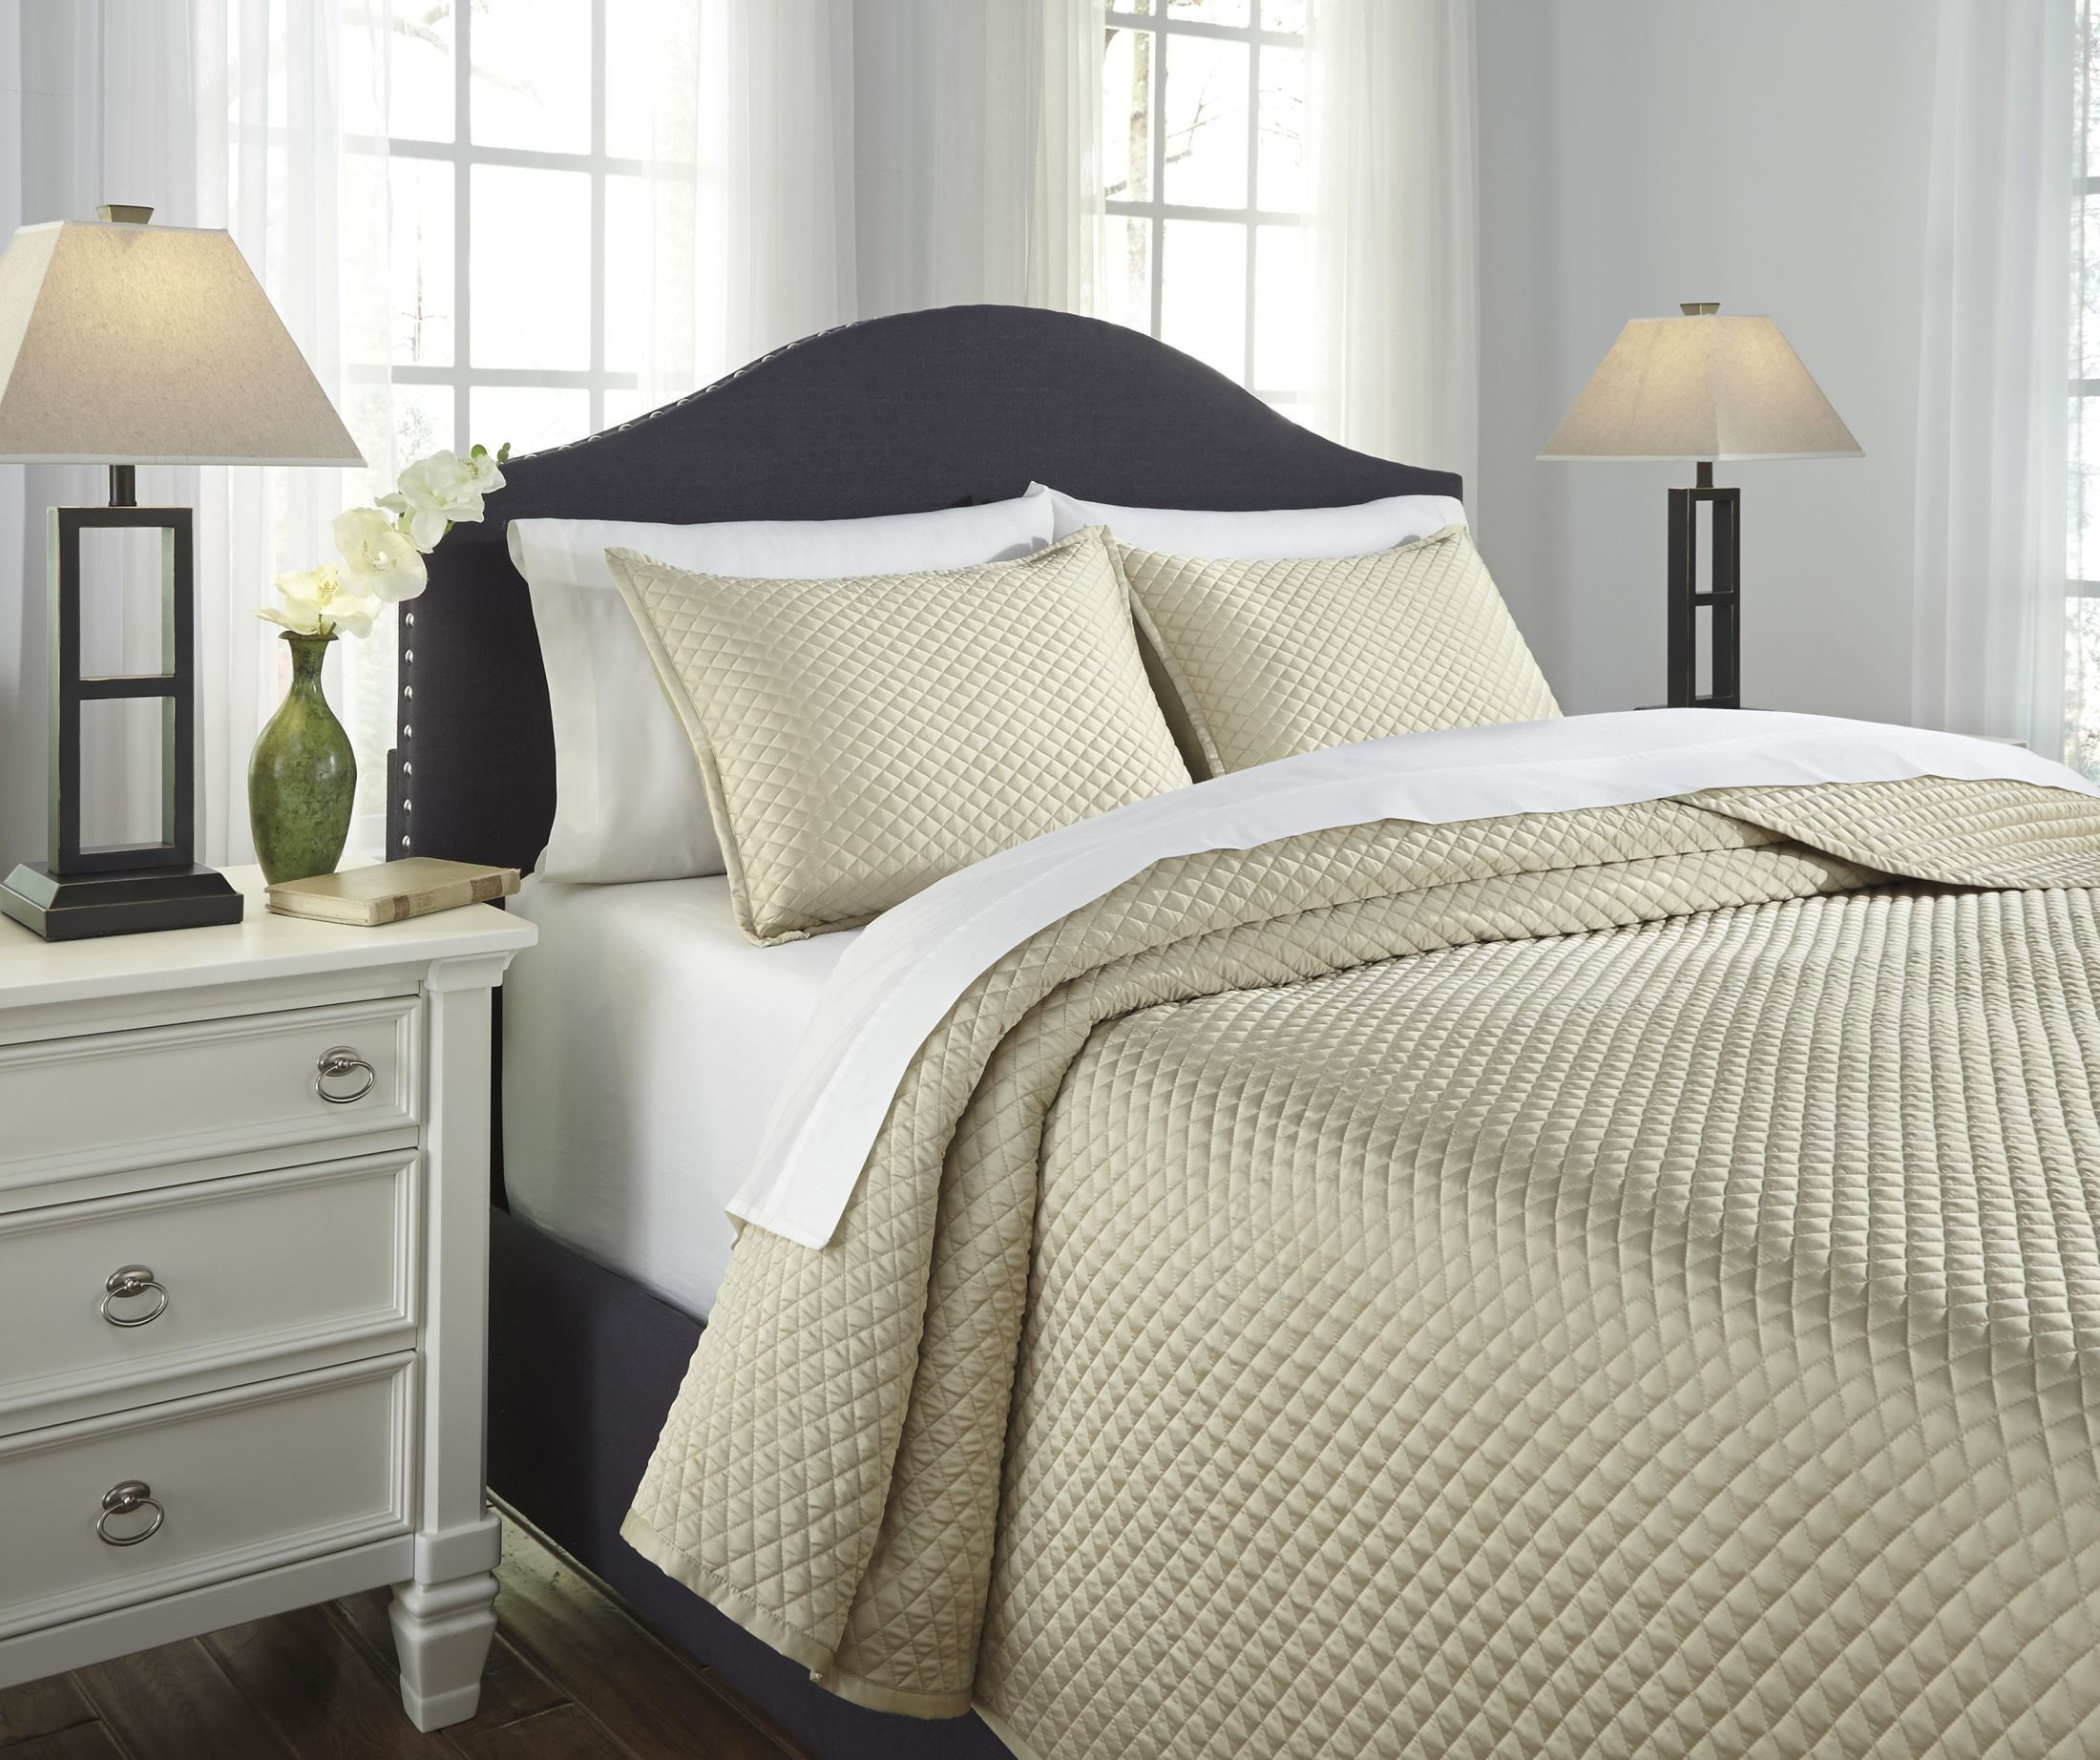 Dietrick sand queen quilt set from ashley coleman furniture for Furniture 7 days to die